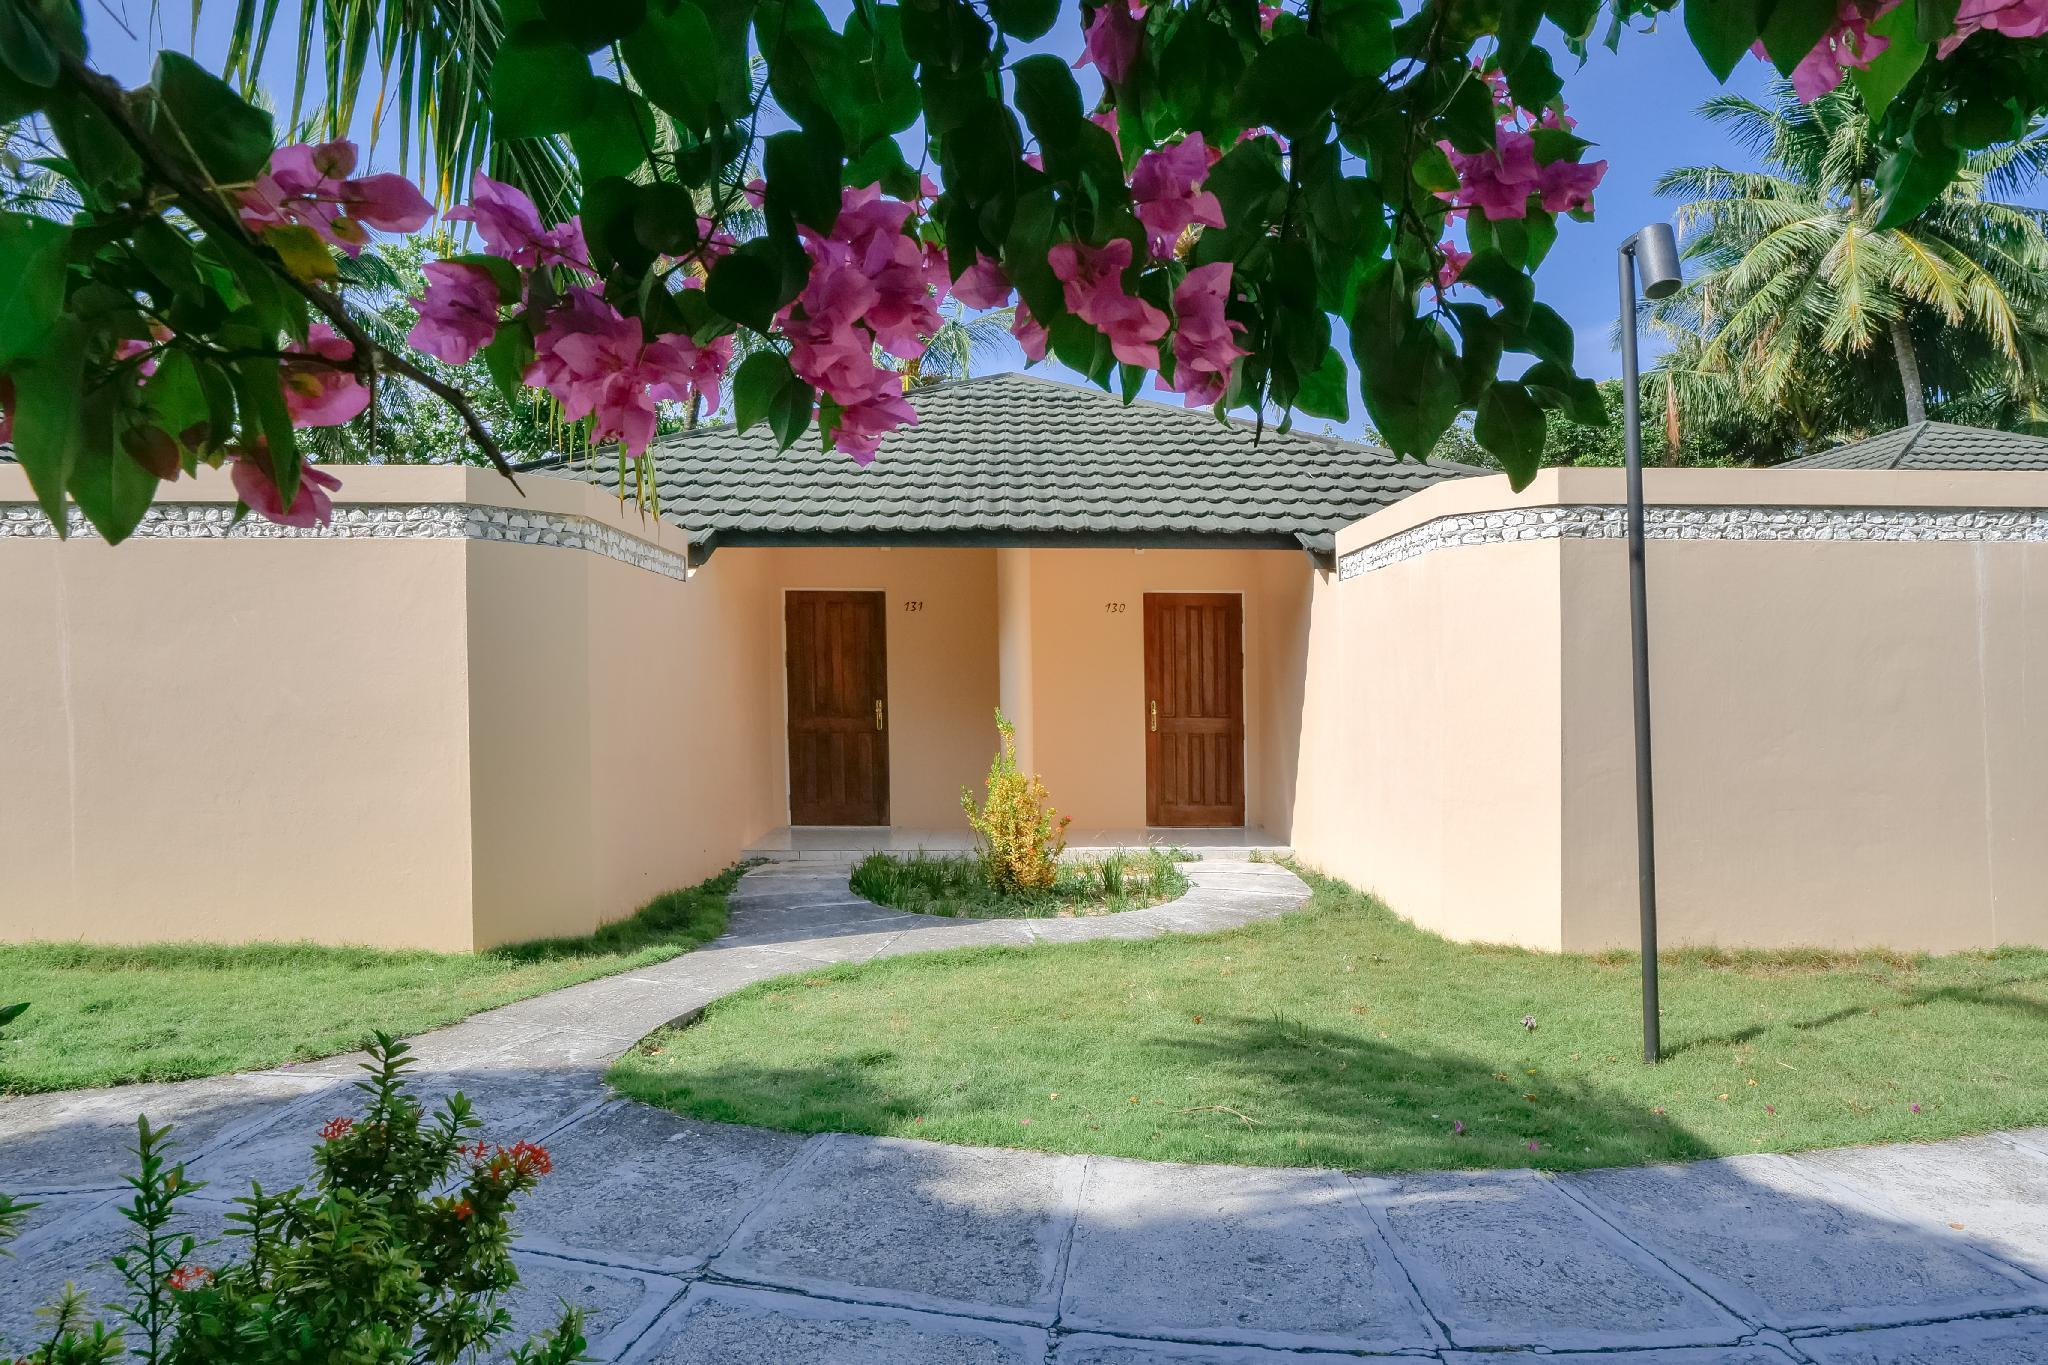 2-Bedroom Family Beach Villa with Garden